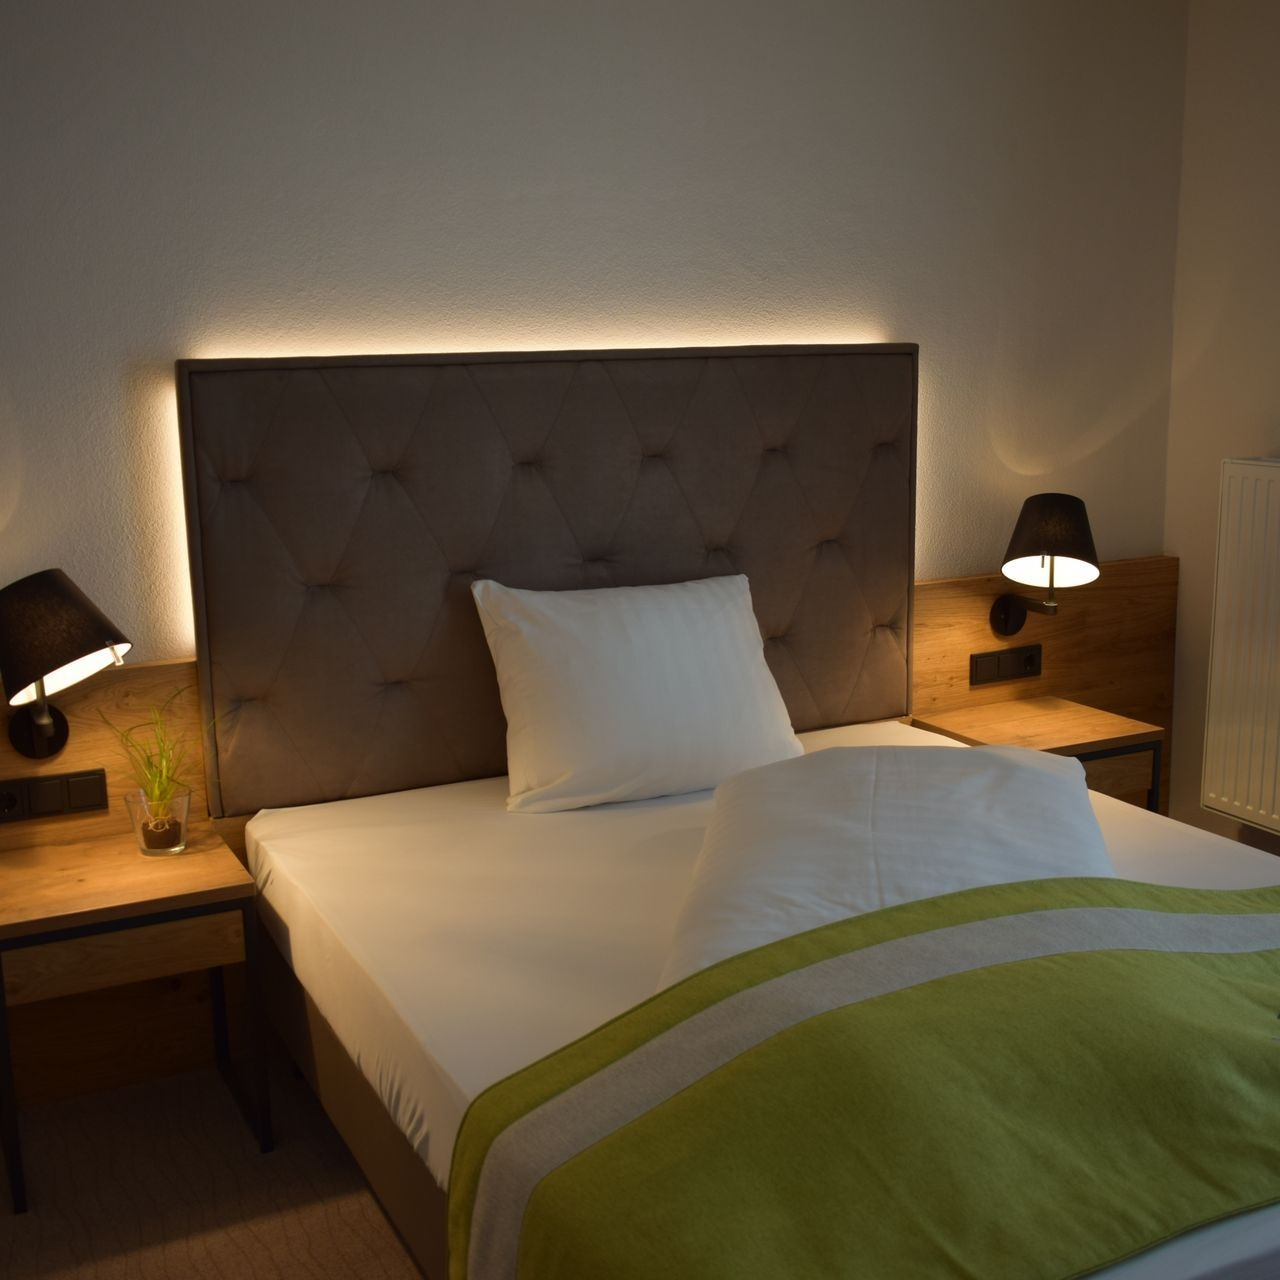 Hotel Forster Am See Gasthaus Germany At Hrs With Free Services